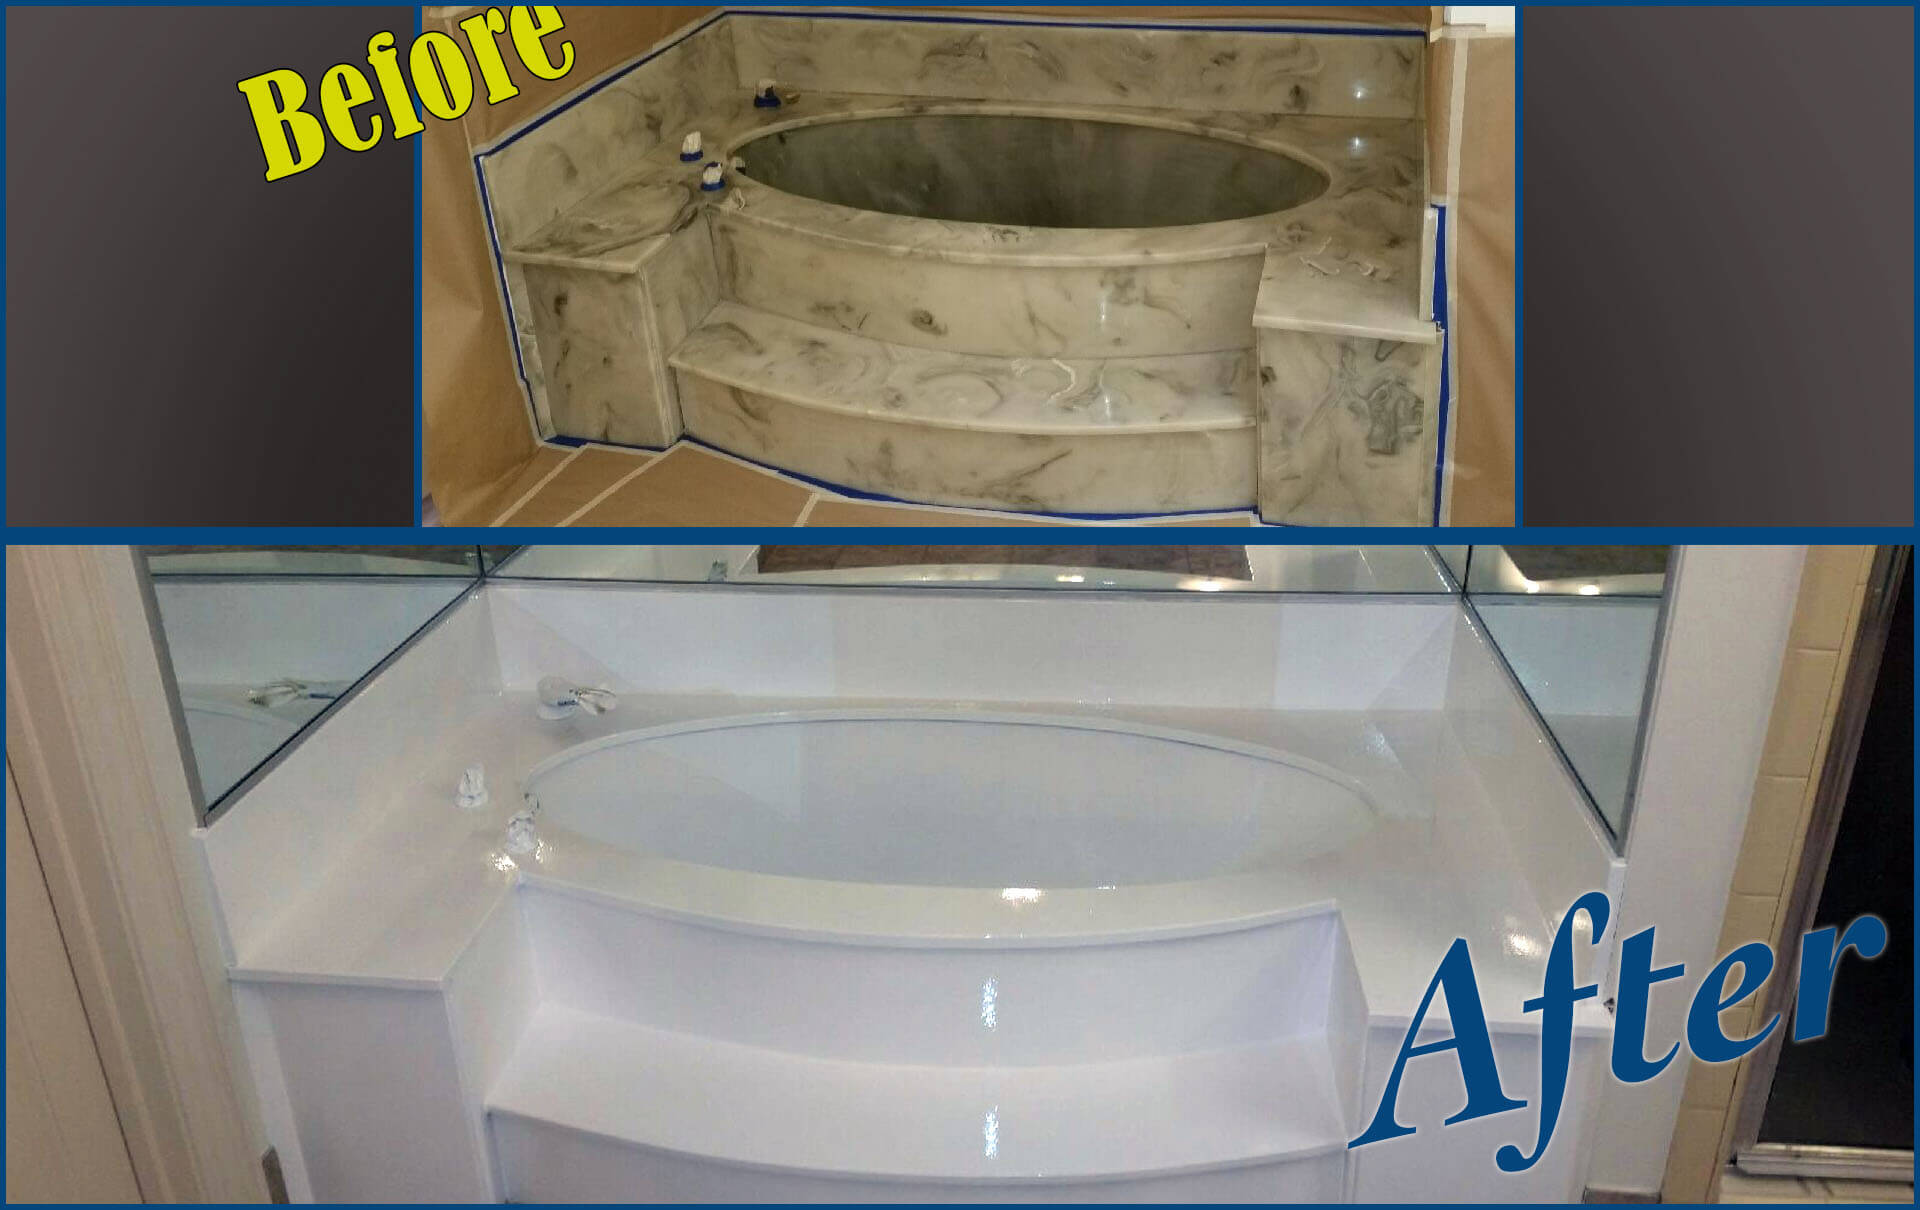 Tub Resurfacing-San Diego Bathtub Reglazing & Tub Resurfacing Pros